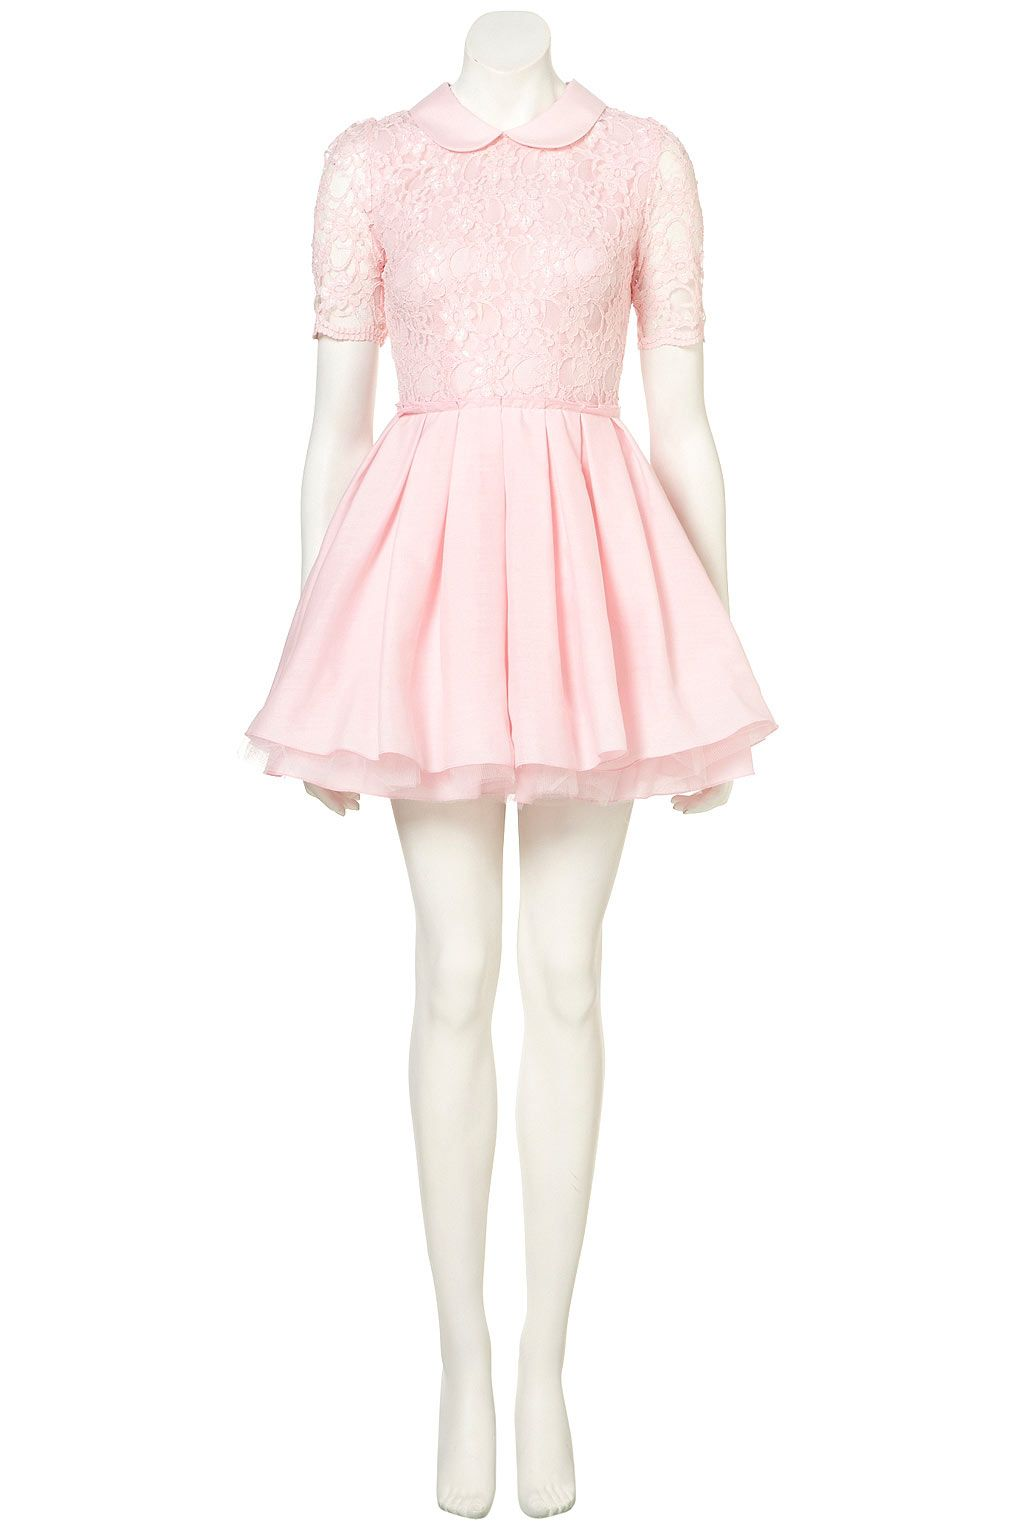 Lace dress pink  little baby doll  Pretty Please  Pinterest  Baby dolls and